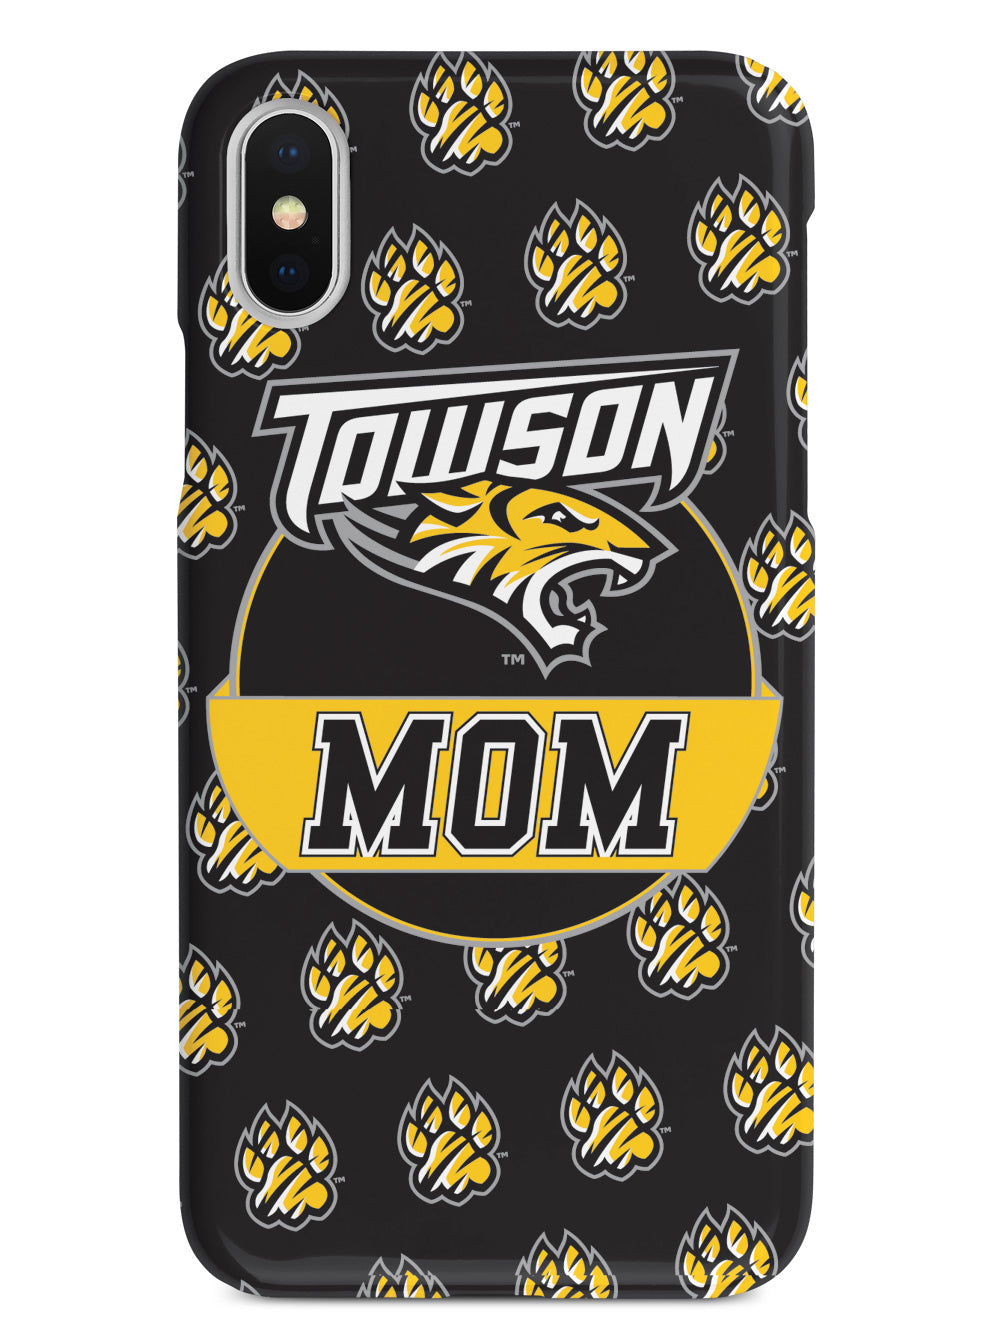 College Mom - Towson University Tigers Case